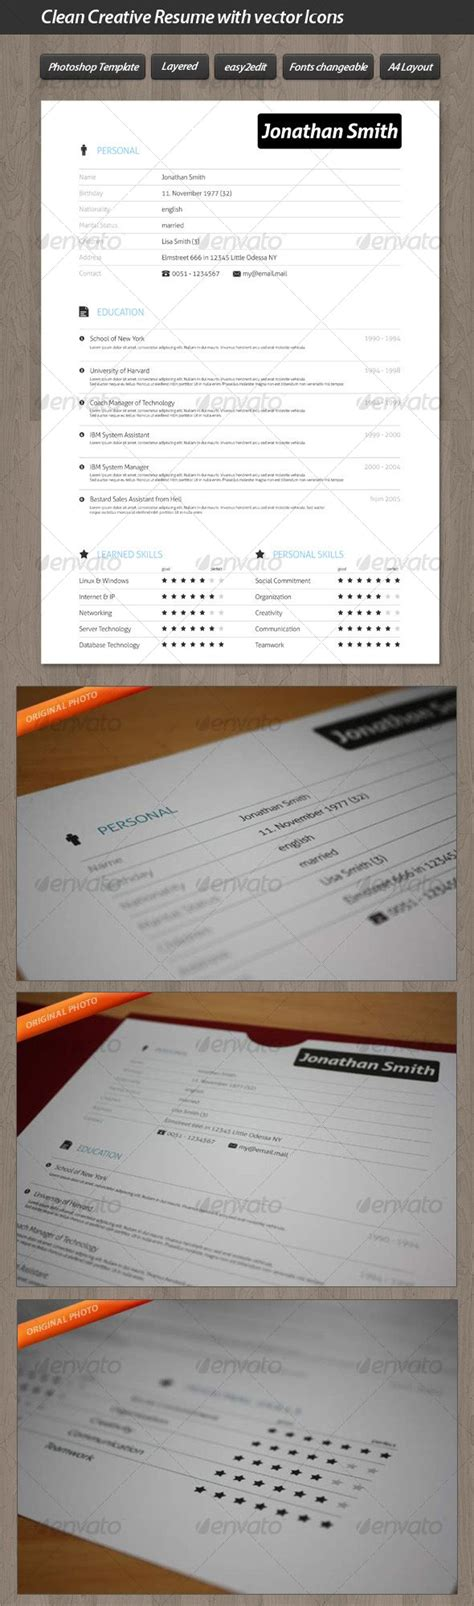 clean creative resume 1000 images about photoshop resume templates on